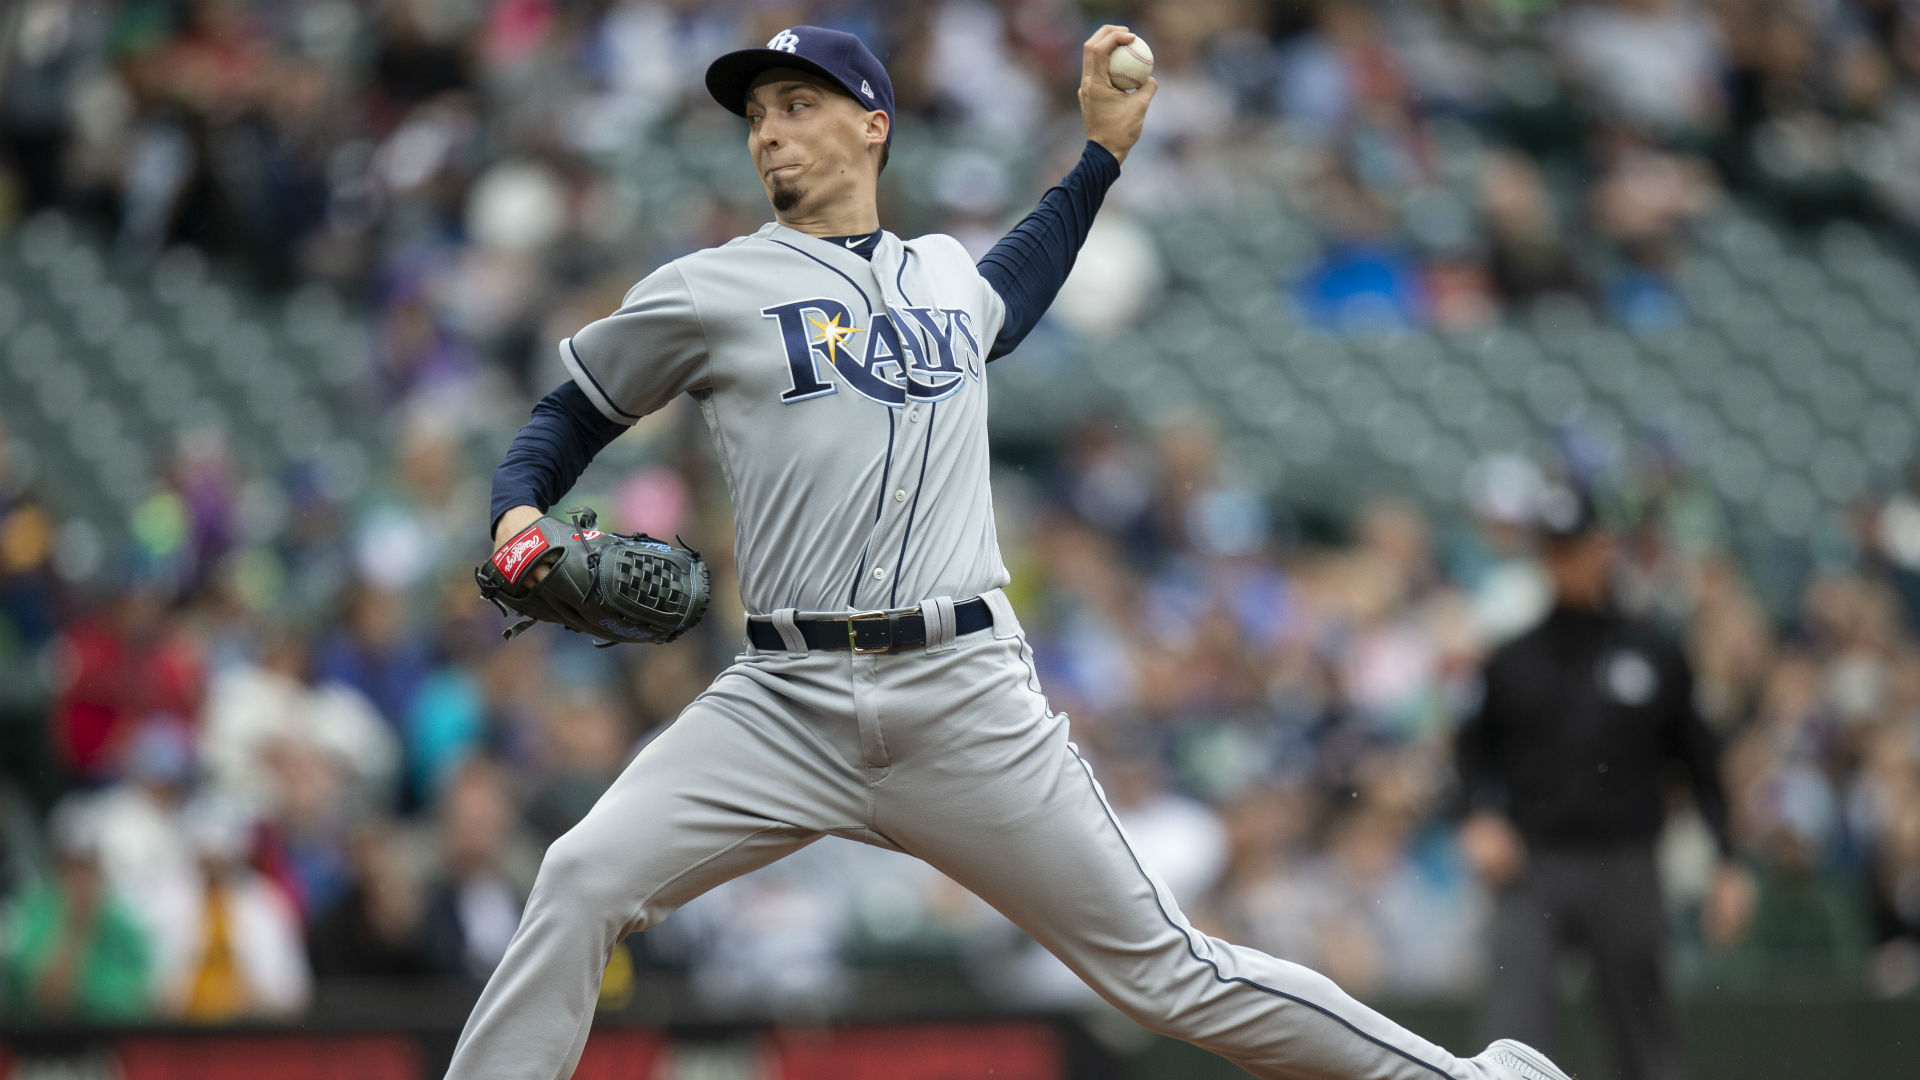 Rays' Blake Snell lands on IL after at-home mishap results in broken toe